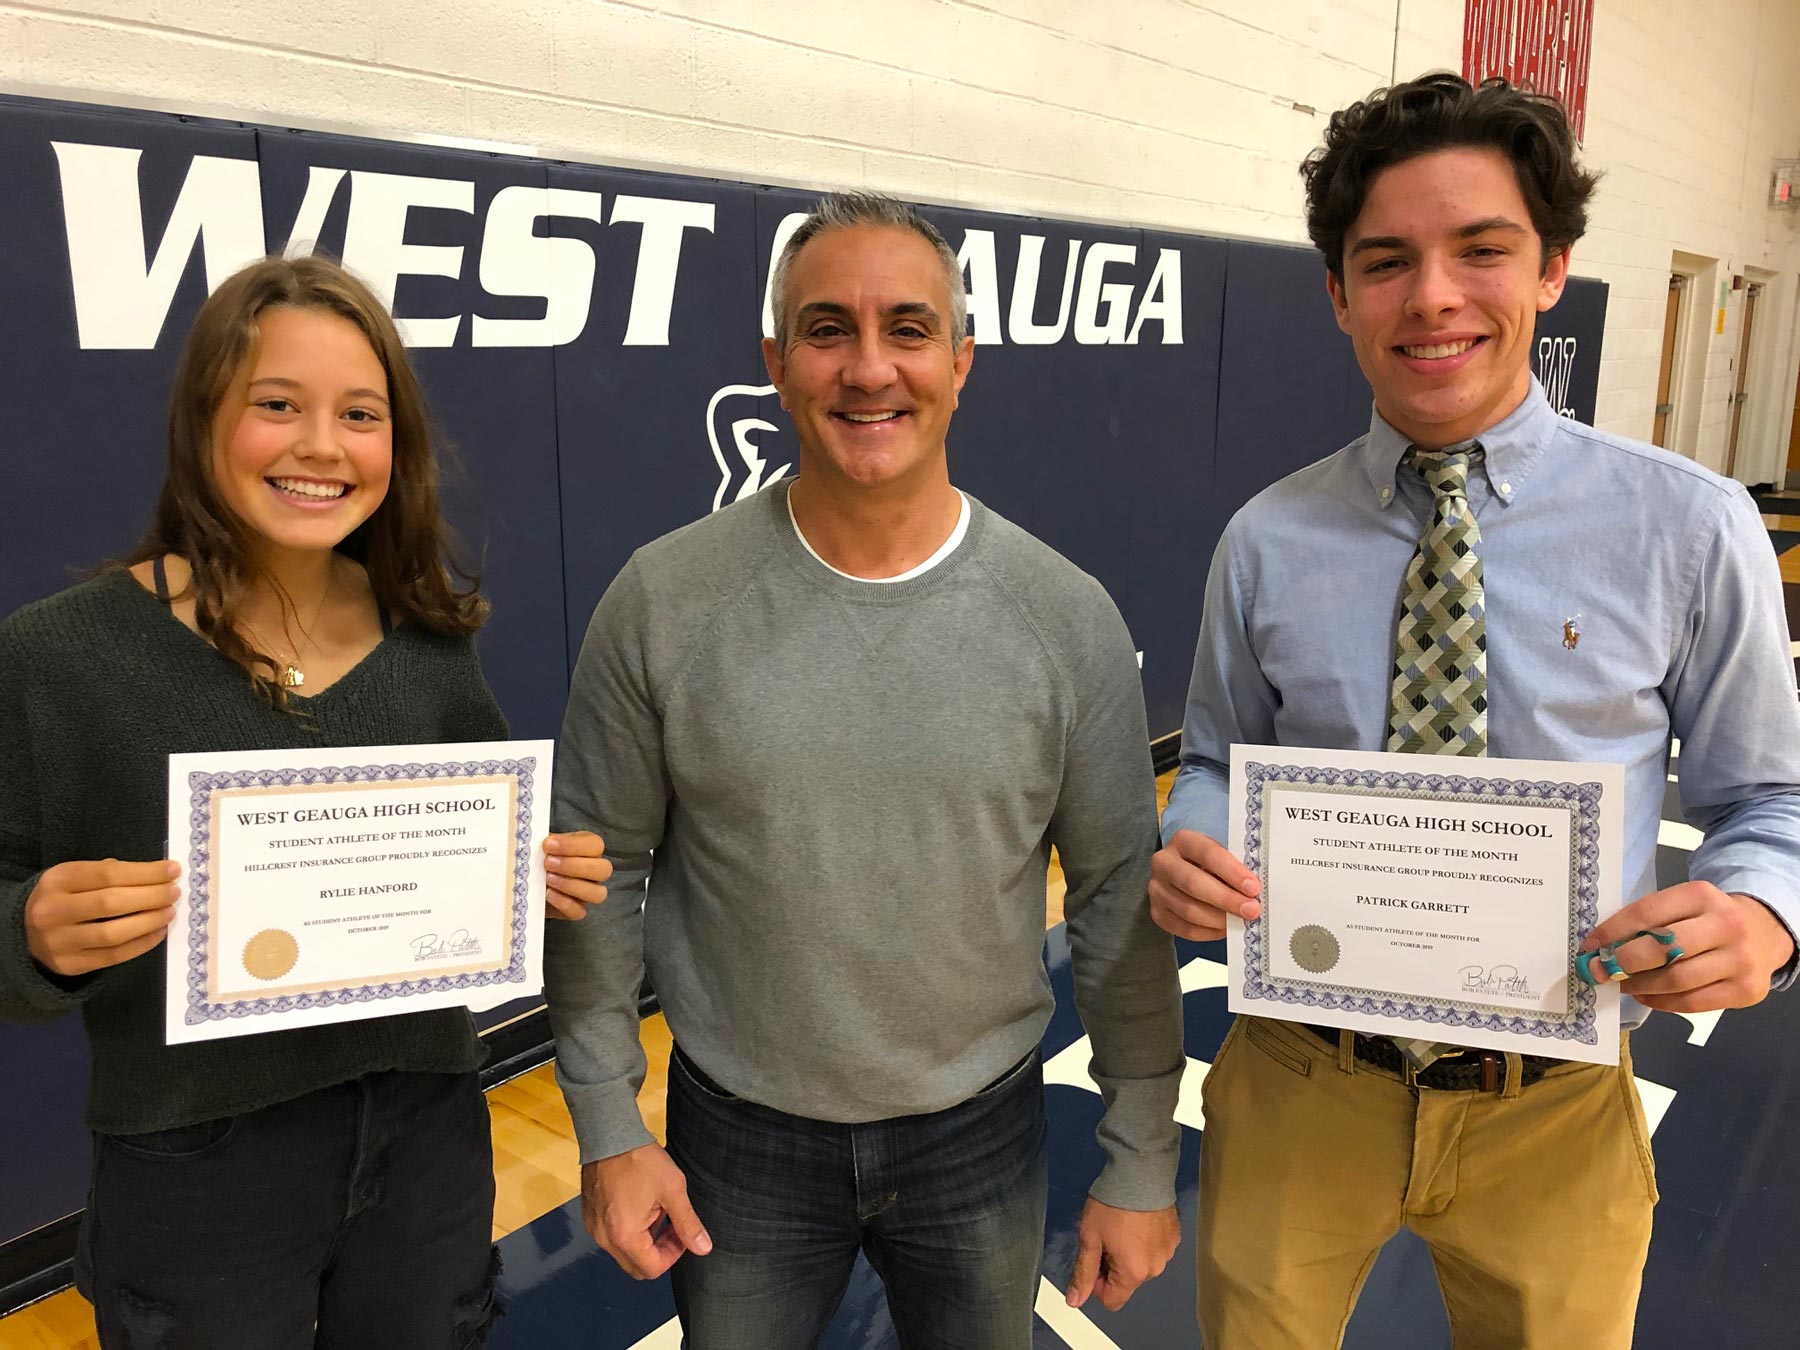 West Geauga October 2019 Student Athlete of the Month by Hillcrest Insurance - Rylie Hanford & Patrick Garrett